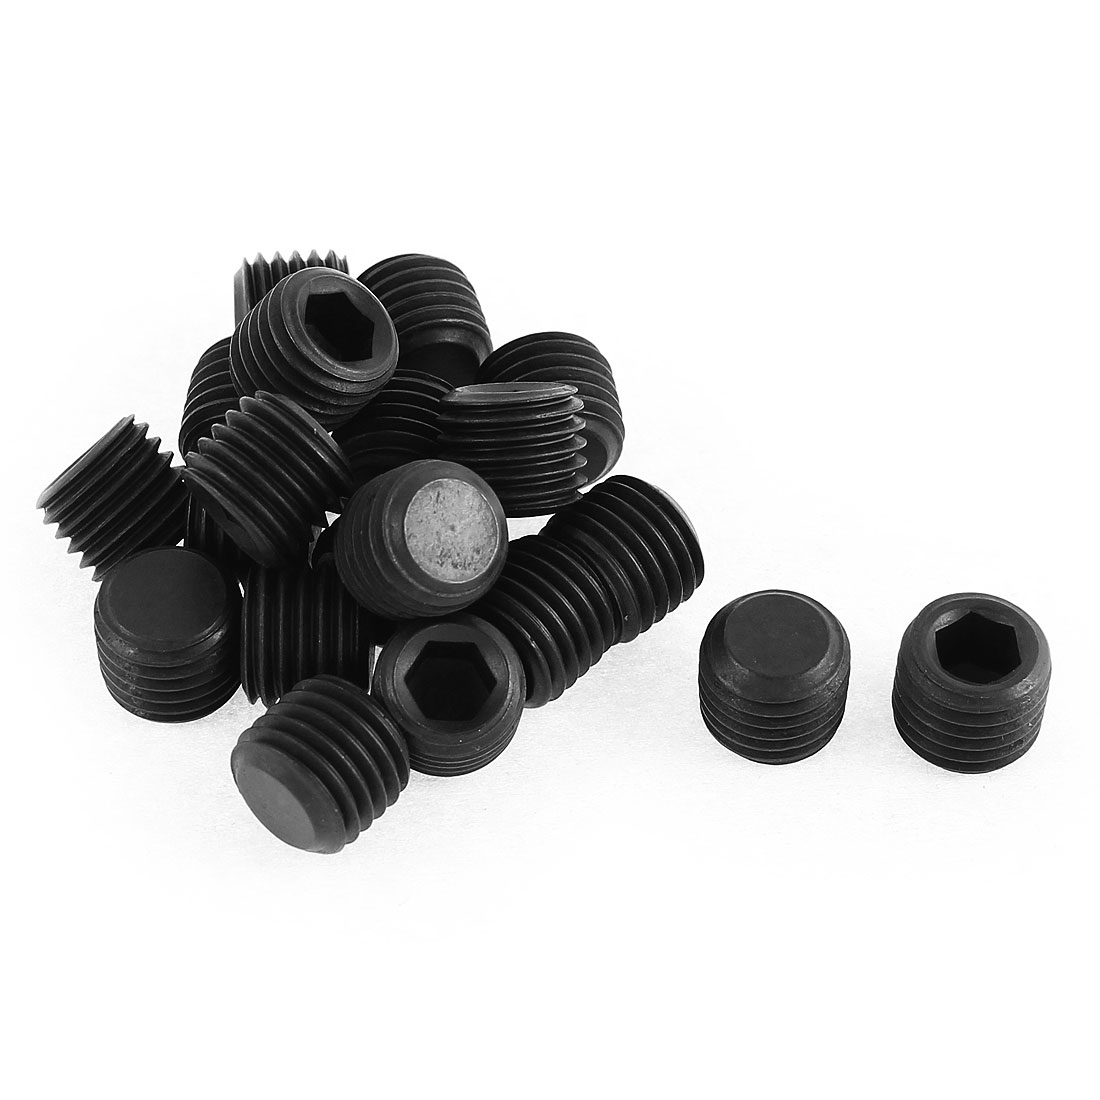 M12x1.5mm Pitch 12.9 Alloy Steel Hex Socket Set Cap Point Grub Screws Black 20pcs